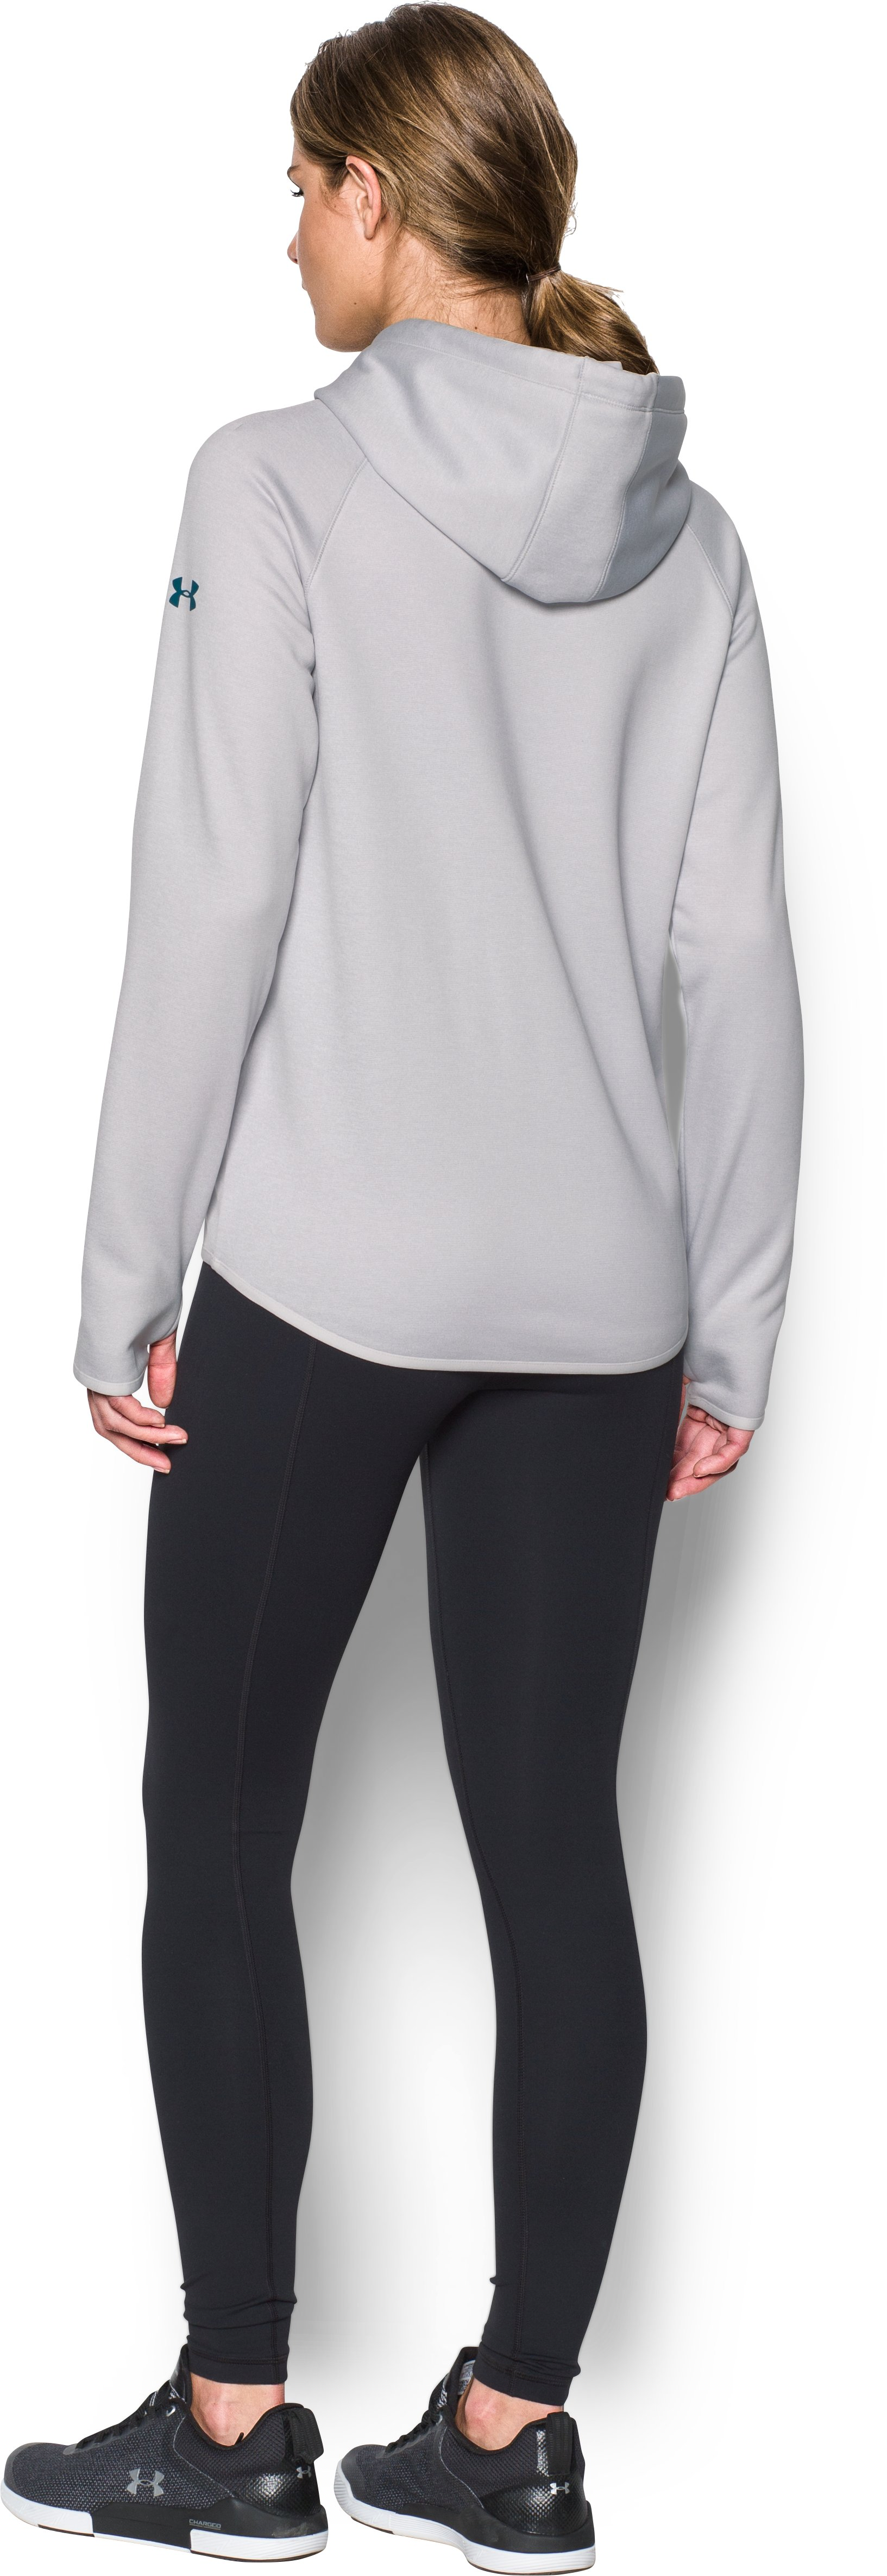 Women's  NFL Combine Authentic UA Storm Logo Hoodie, NFL_PHILADELPHIA EAGLES_GLACIER GRAY, Back